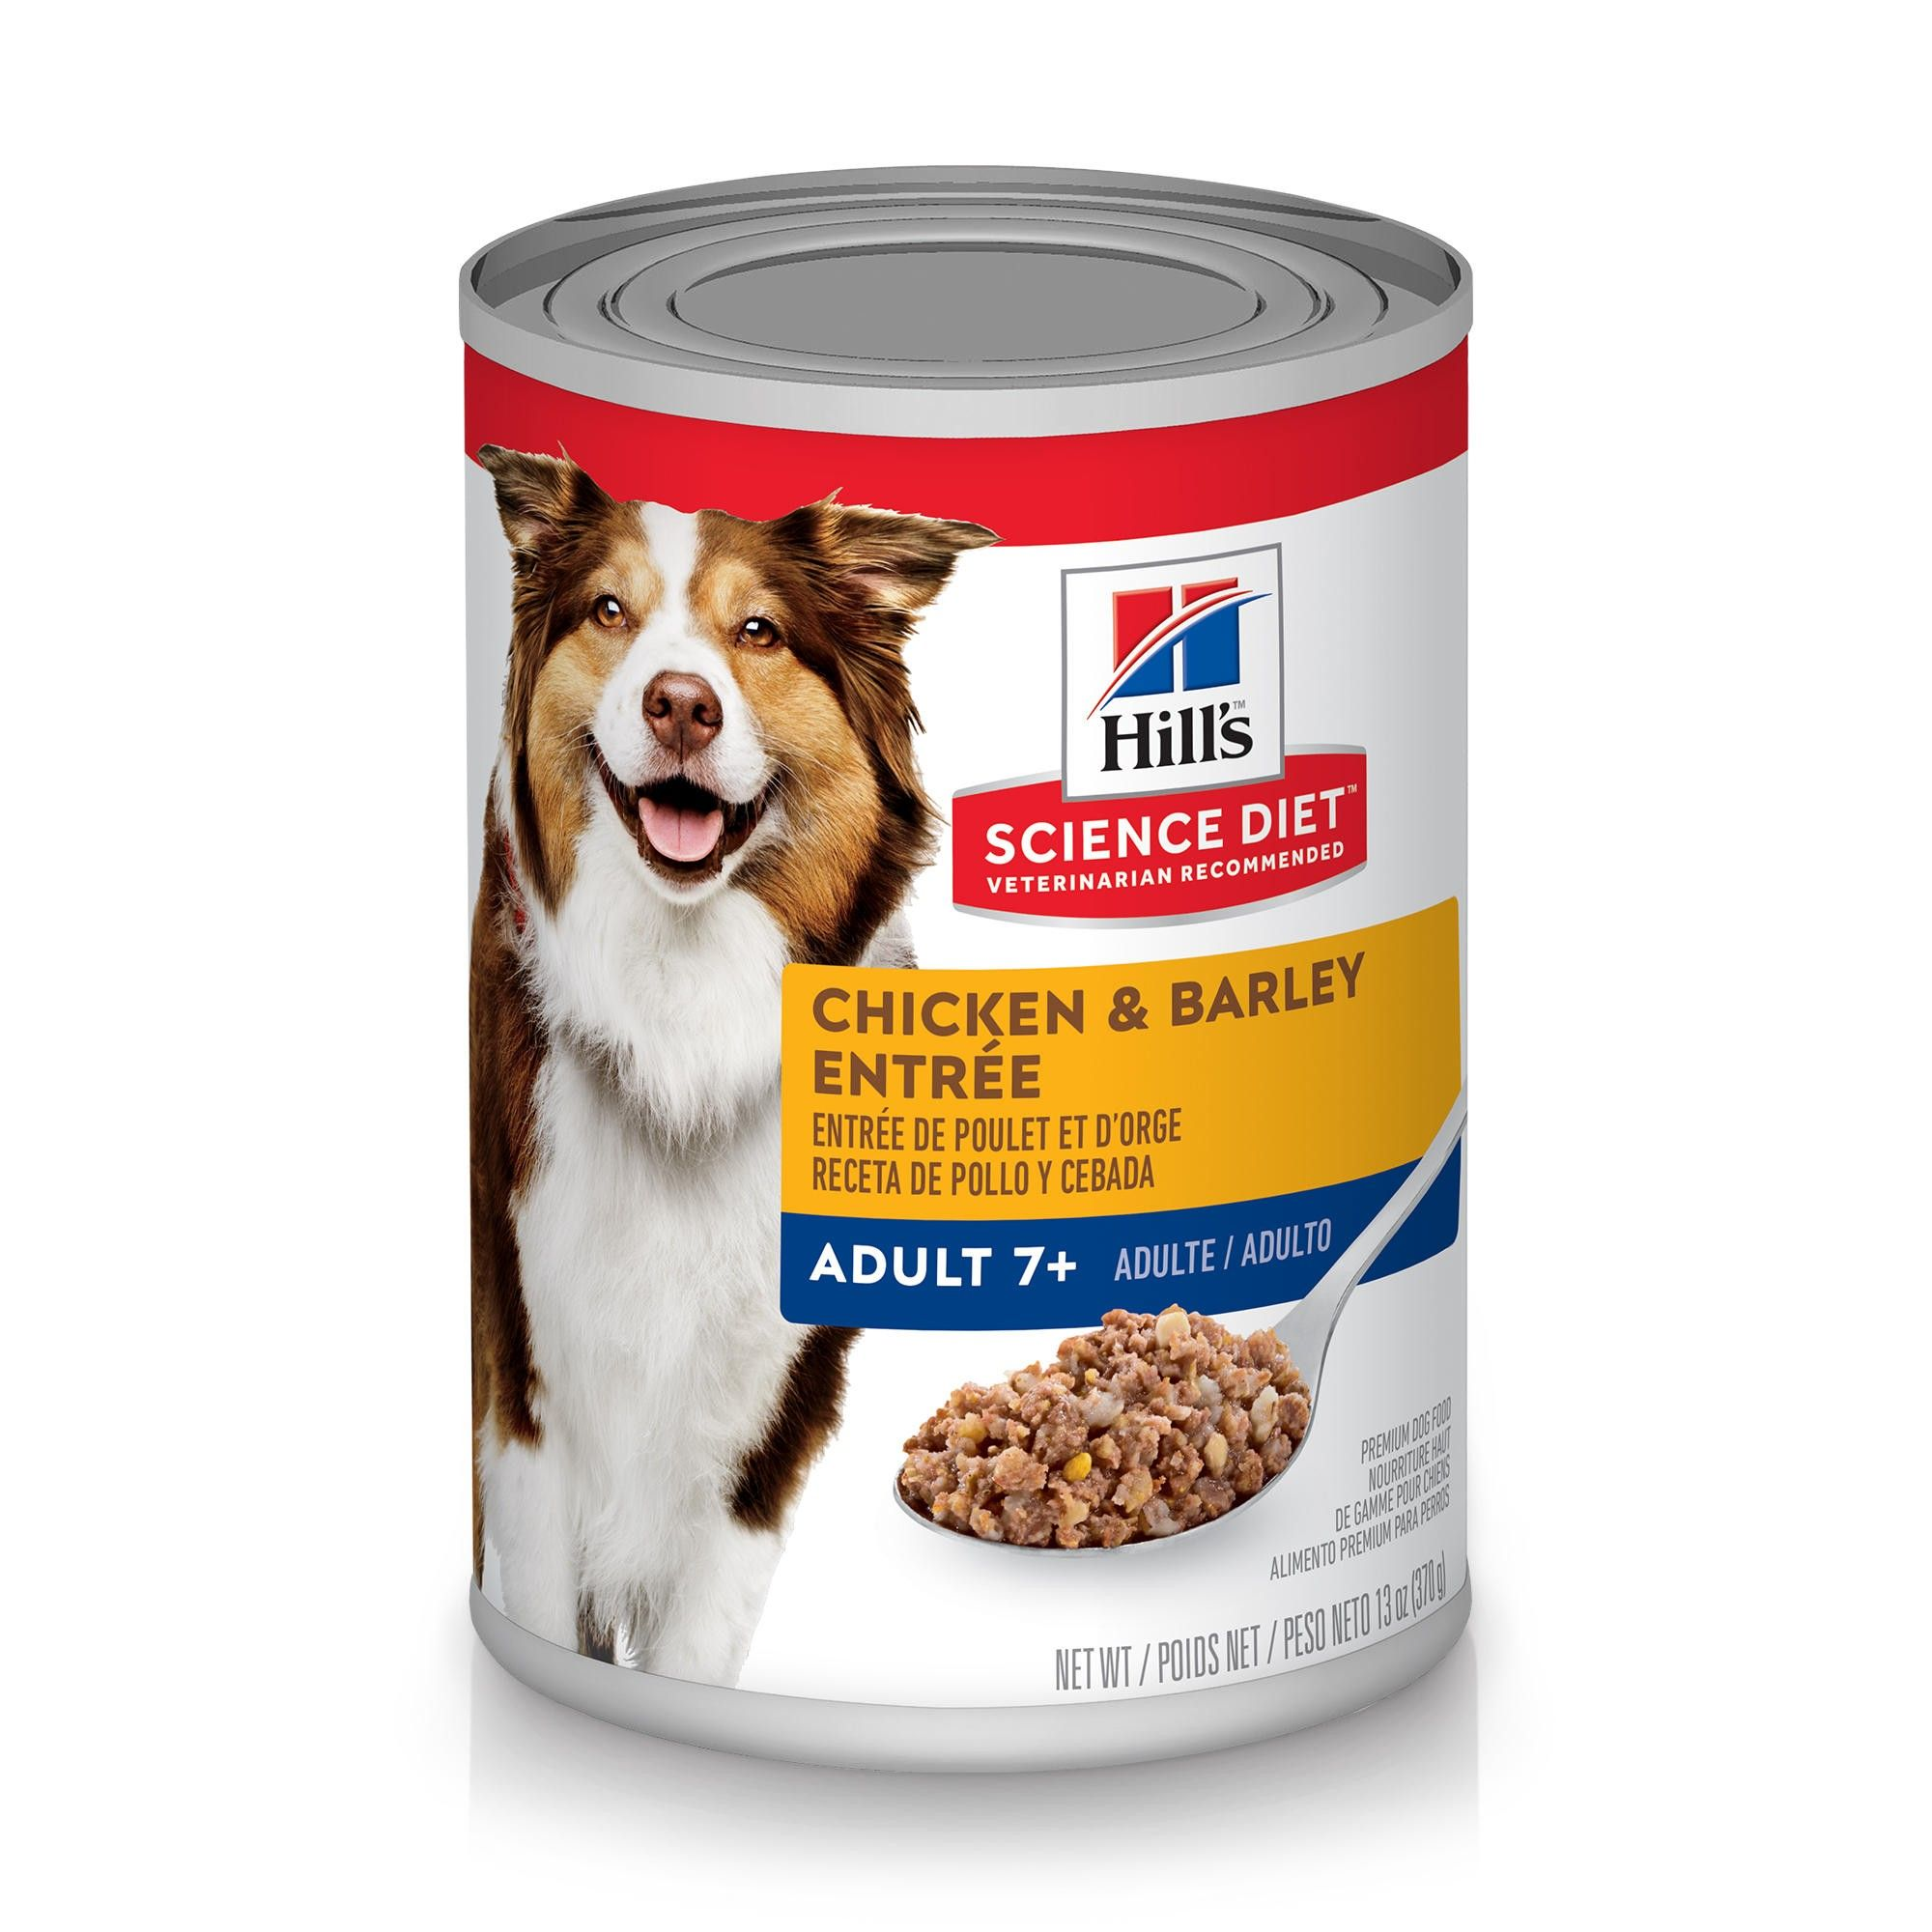 Hill's Science Diet Adult 7+ Chicken & Barley Entree Canned Dog Food, 13-oz, case of 12